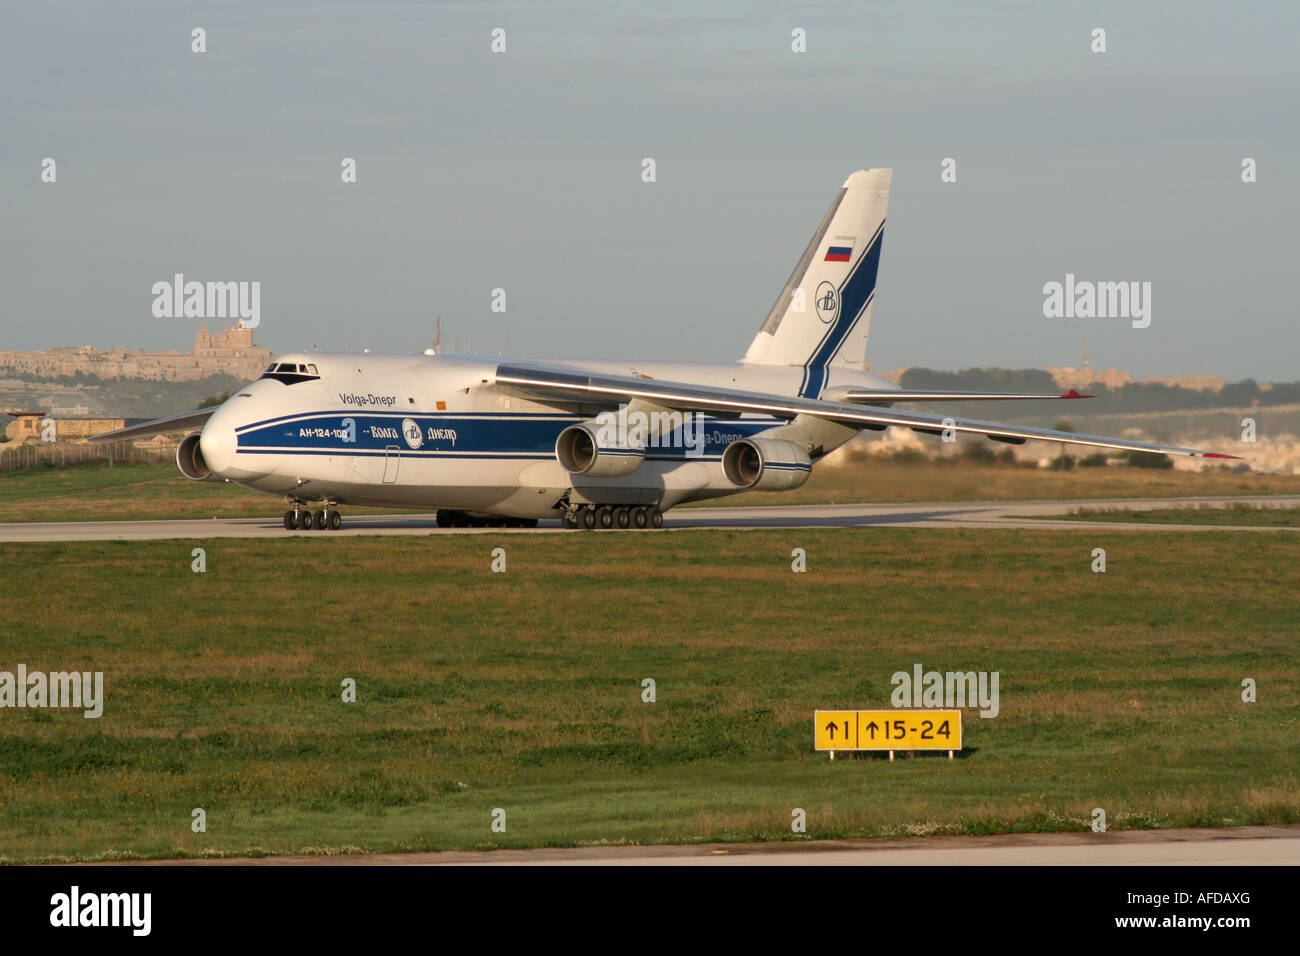 Air freight transport. Antonov An-124 Ruslan heavy cargo jet operated by Volga-Dnepr Airlines taxiing for departure Stock Photo